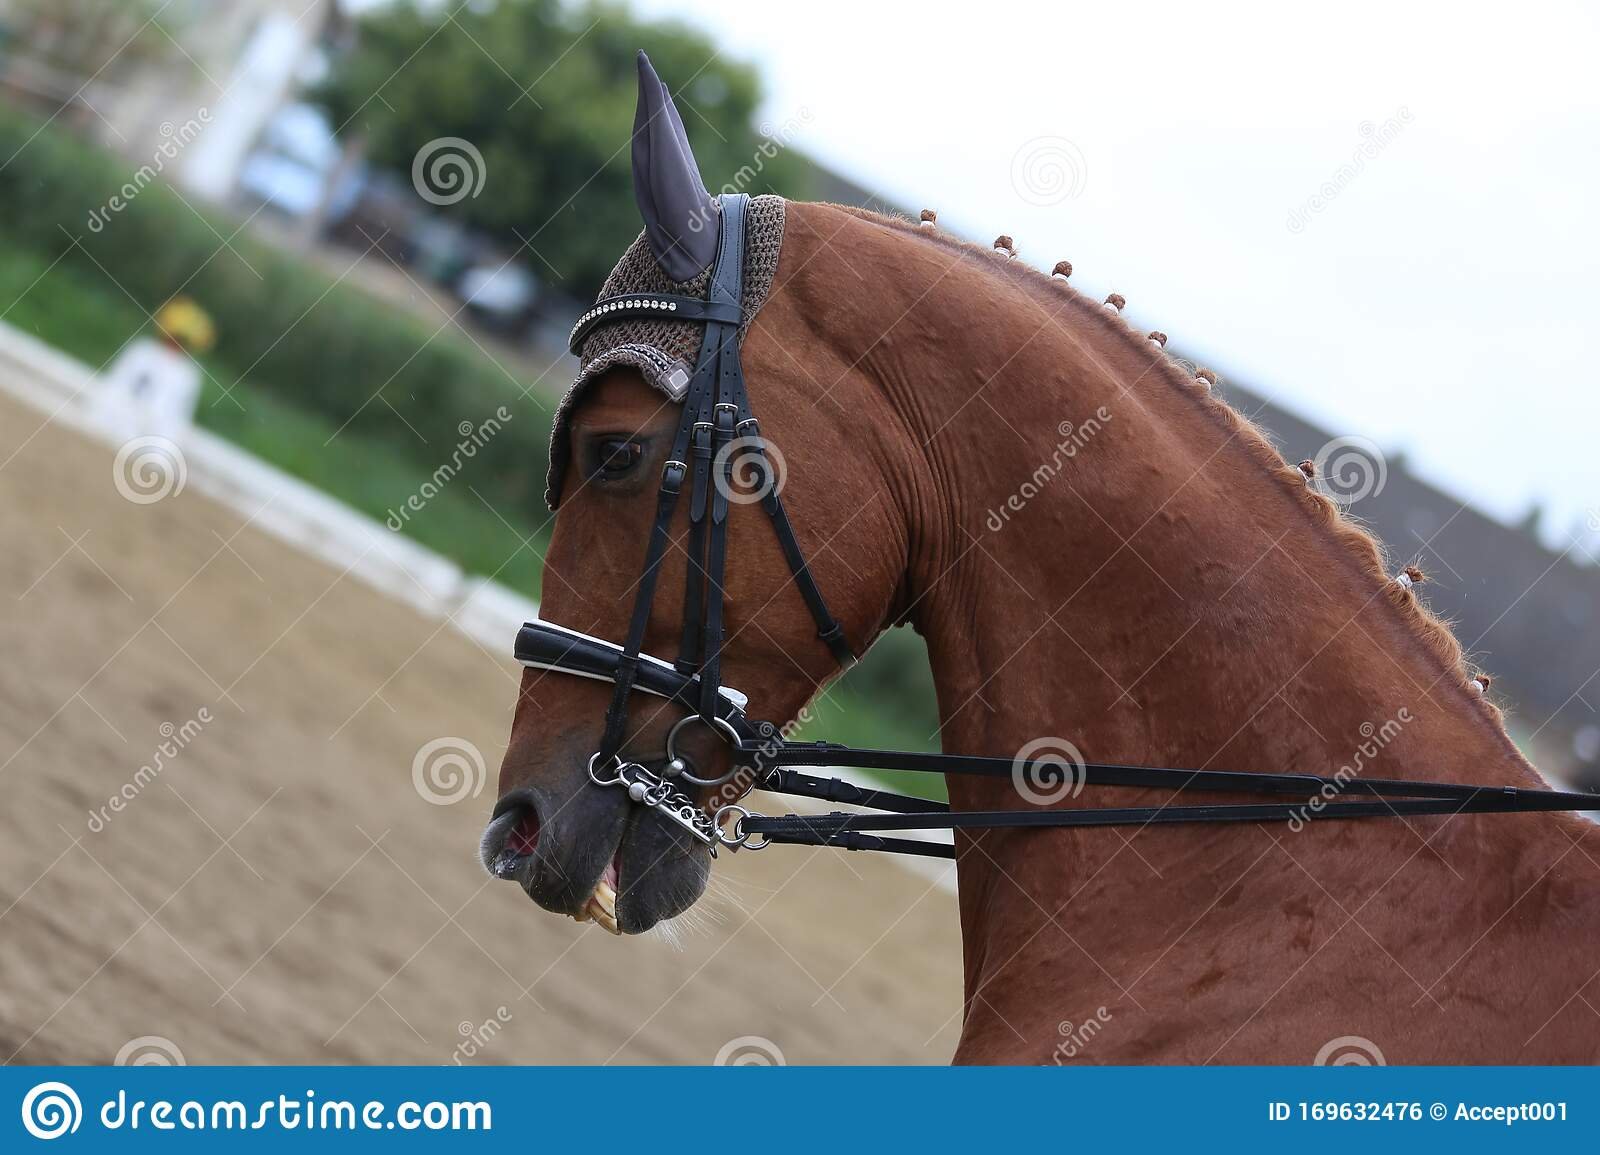 Unknown Contestant Rides At Dressage Horse Event In Riding Ground Outdoors Stock Photo Image Of Competition Girth 169632476